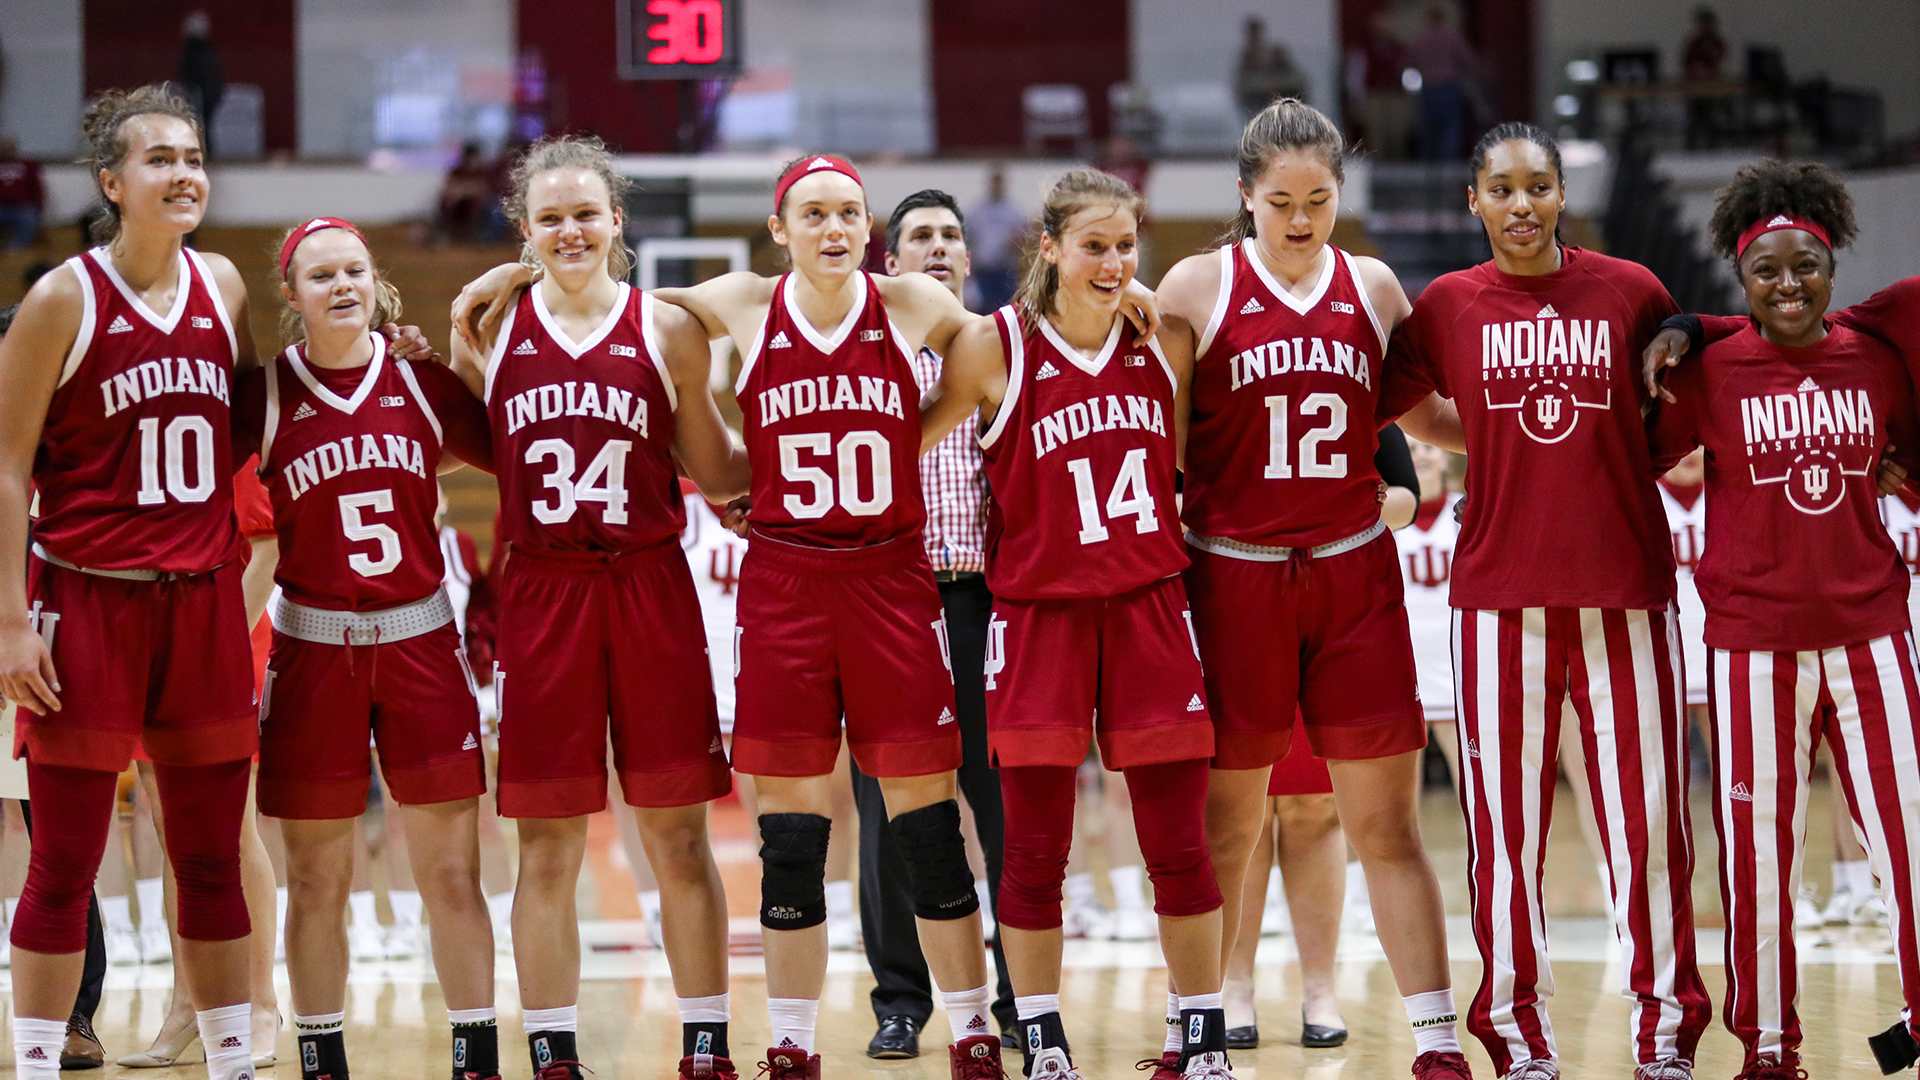 indiana university athletics - official athletics website